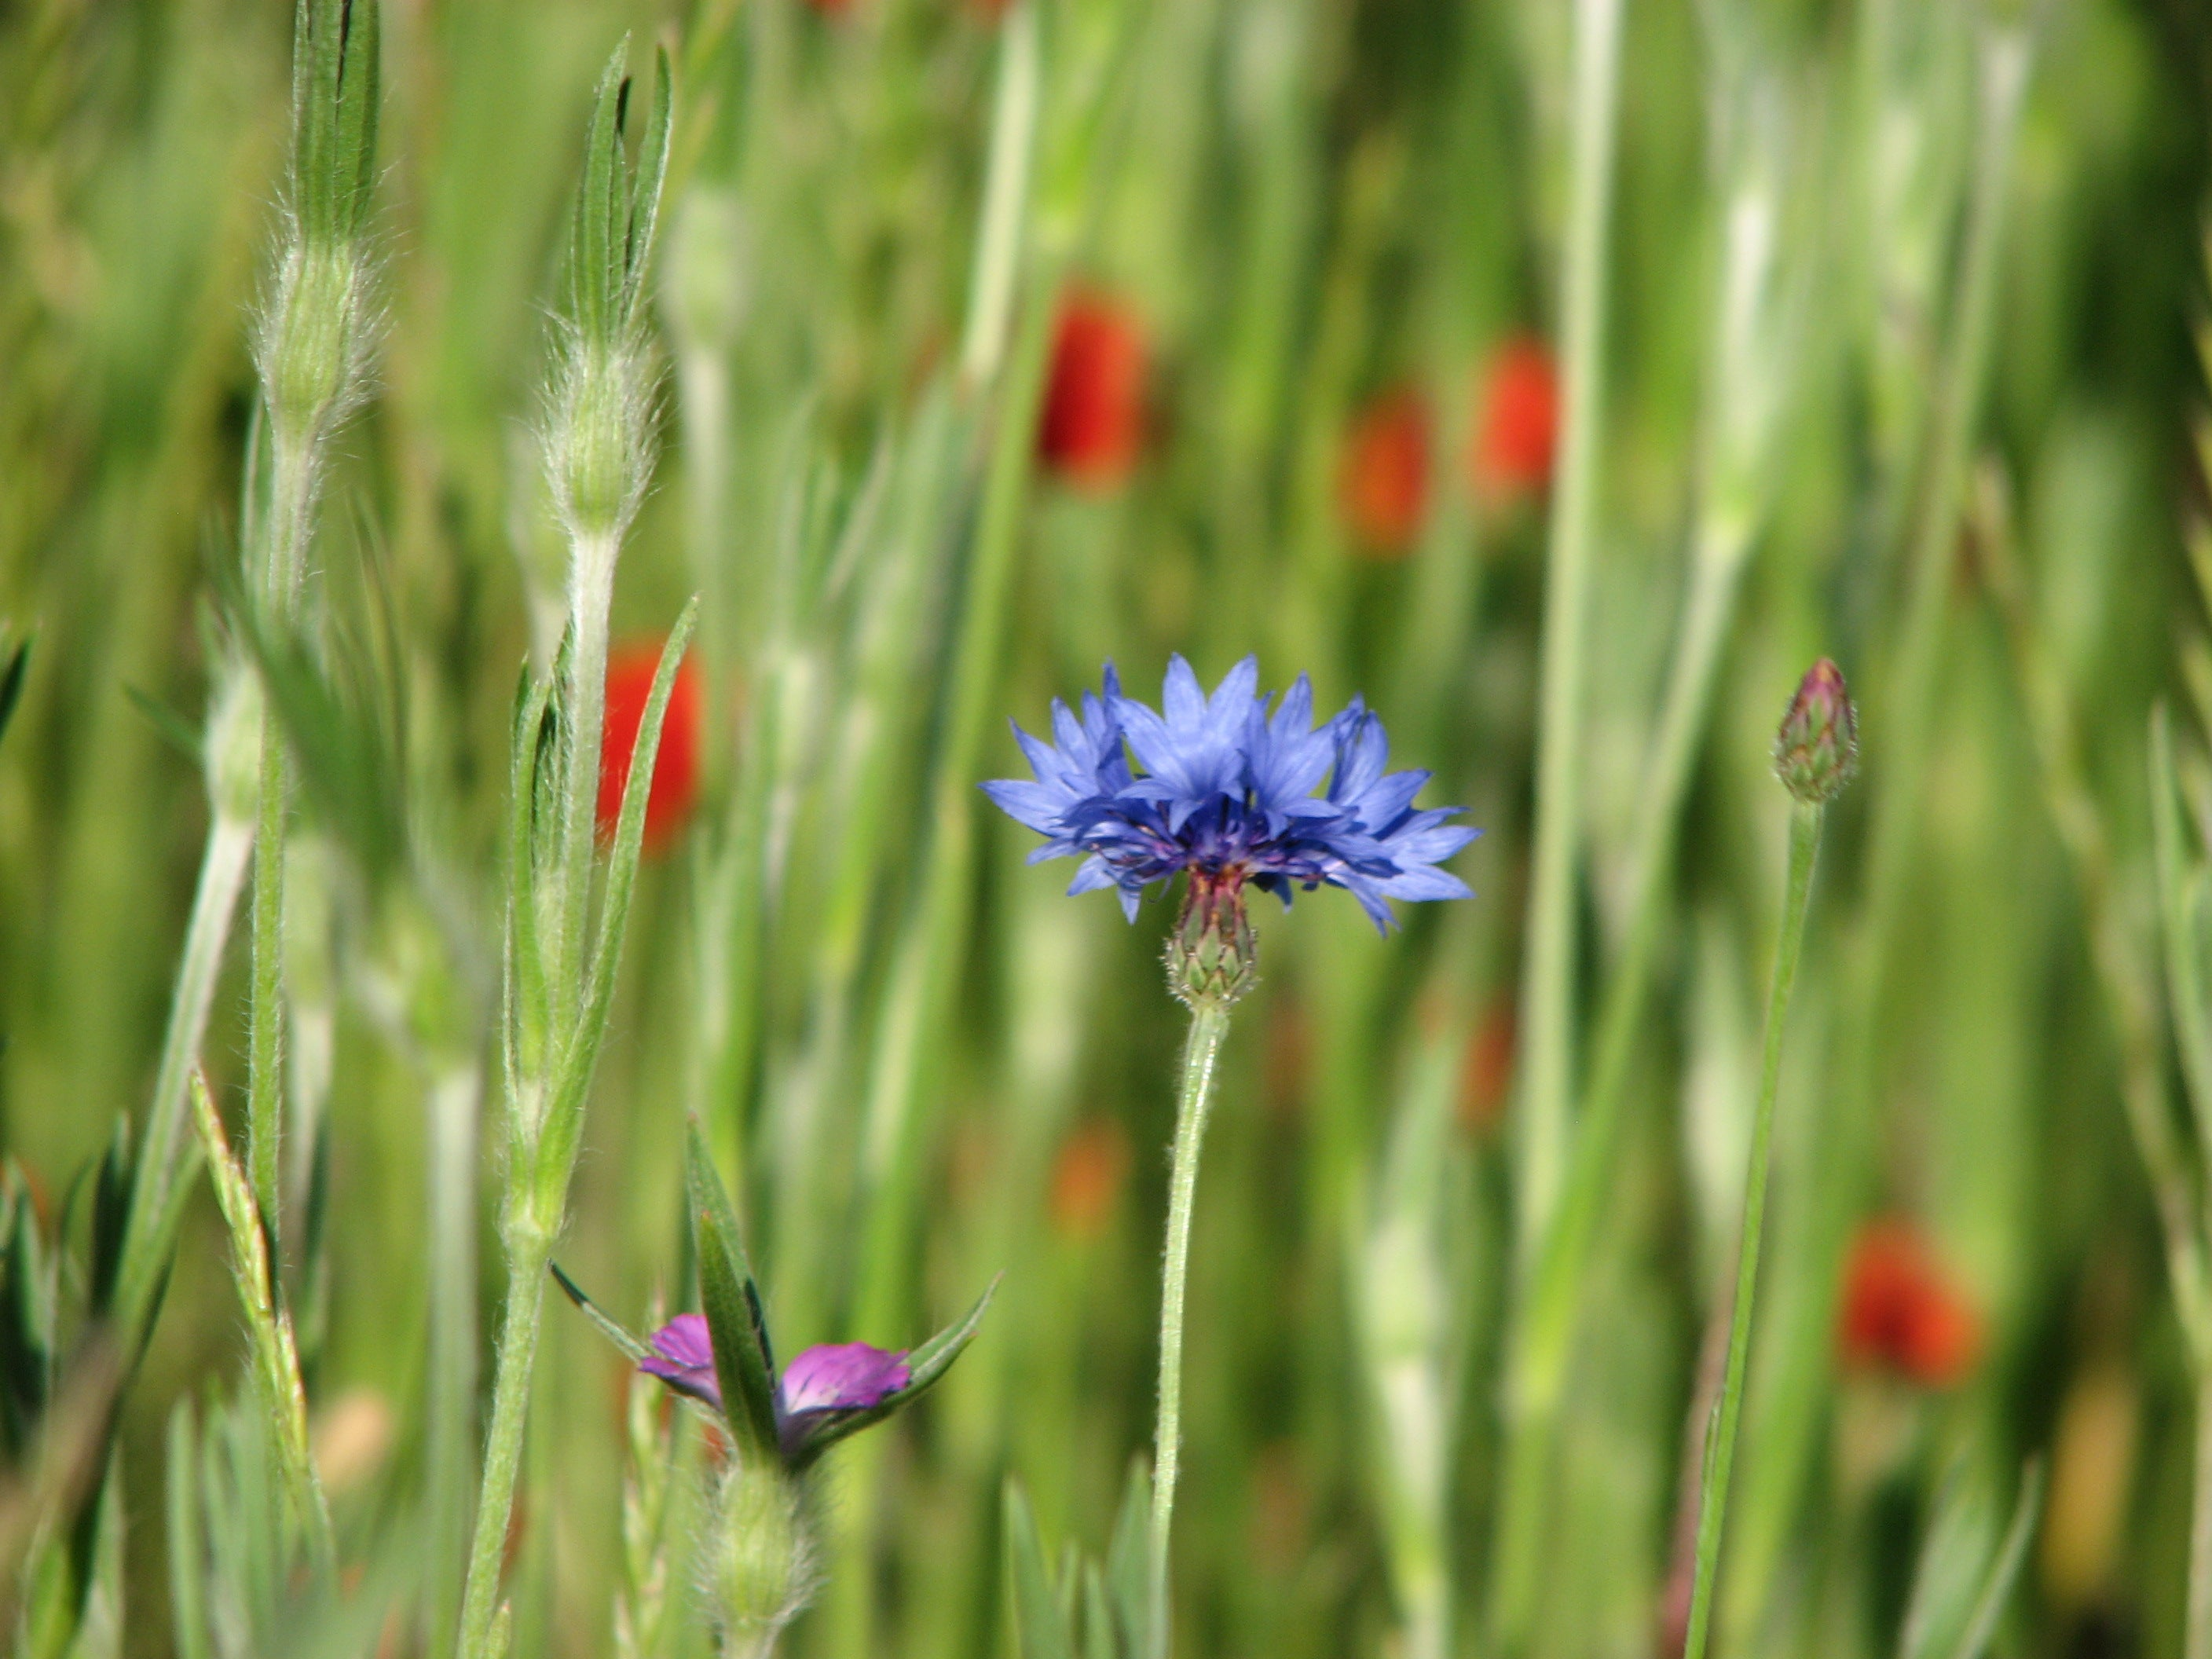 Cornflower in Archie's Meadow, June 2010